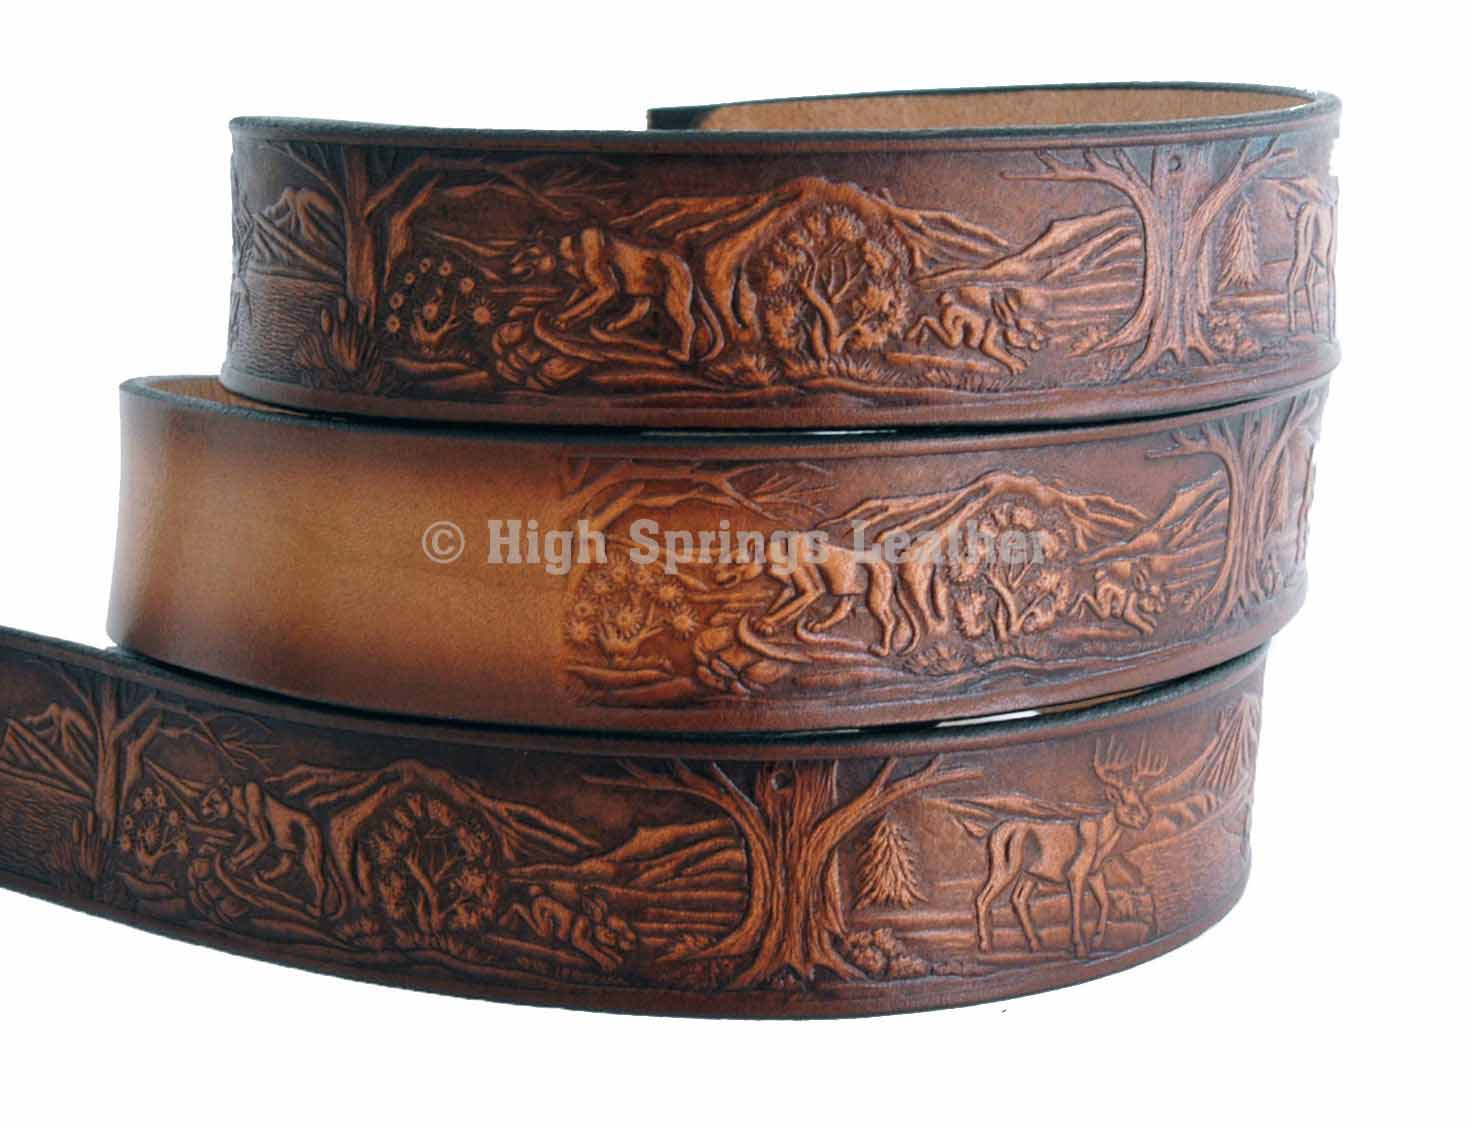 wildlife leather name belt l high springs leather